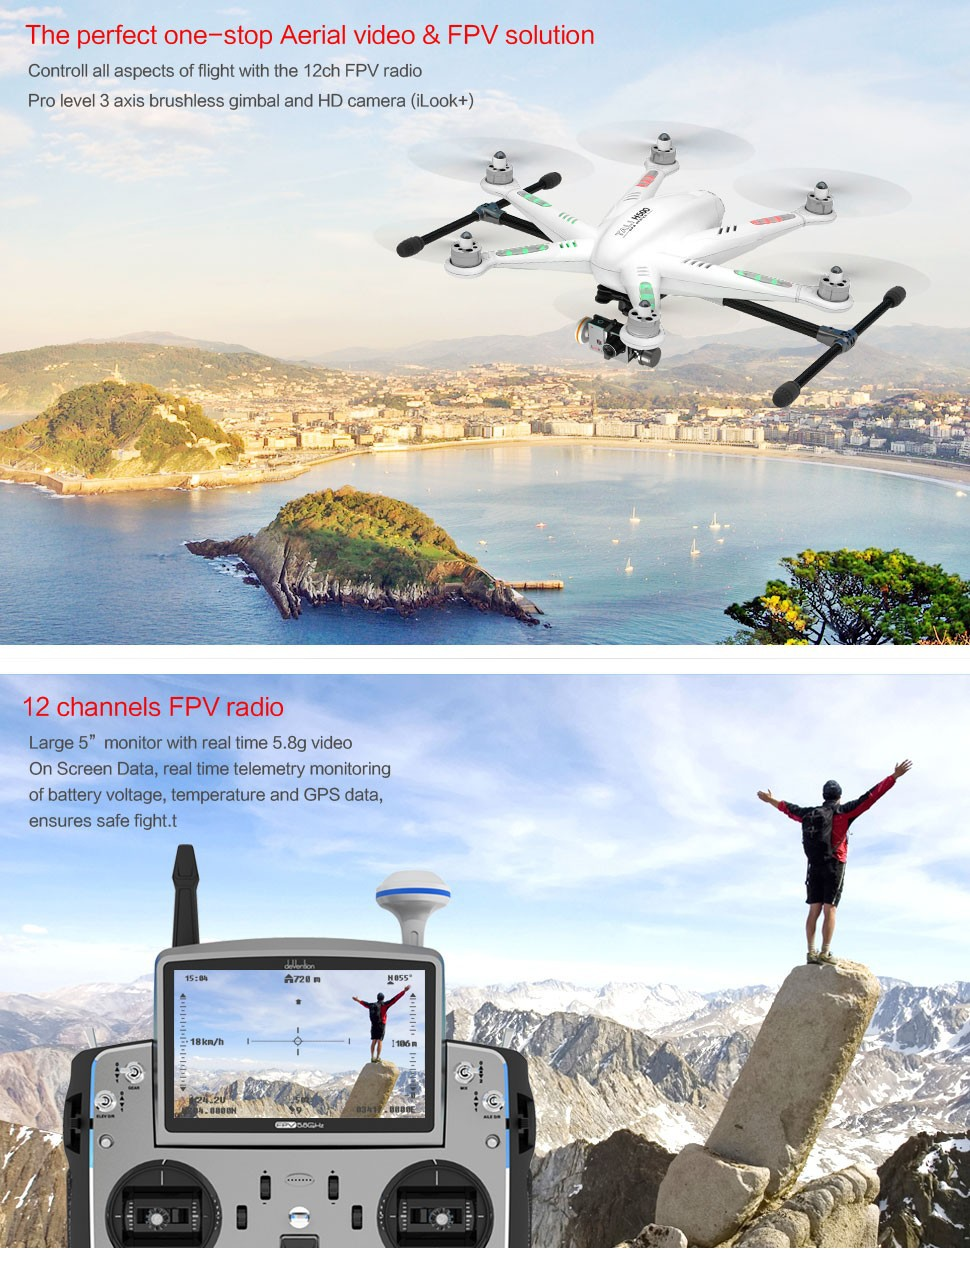 dji phantom 2 vision plus pk Walkera TALI H500 Perfect one-stop FPV Drone RTF Hexrcopter with G-3D Gimbal iLook+ Camera IMAX B6 Charger Transmitter